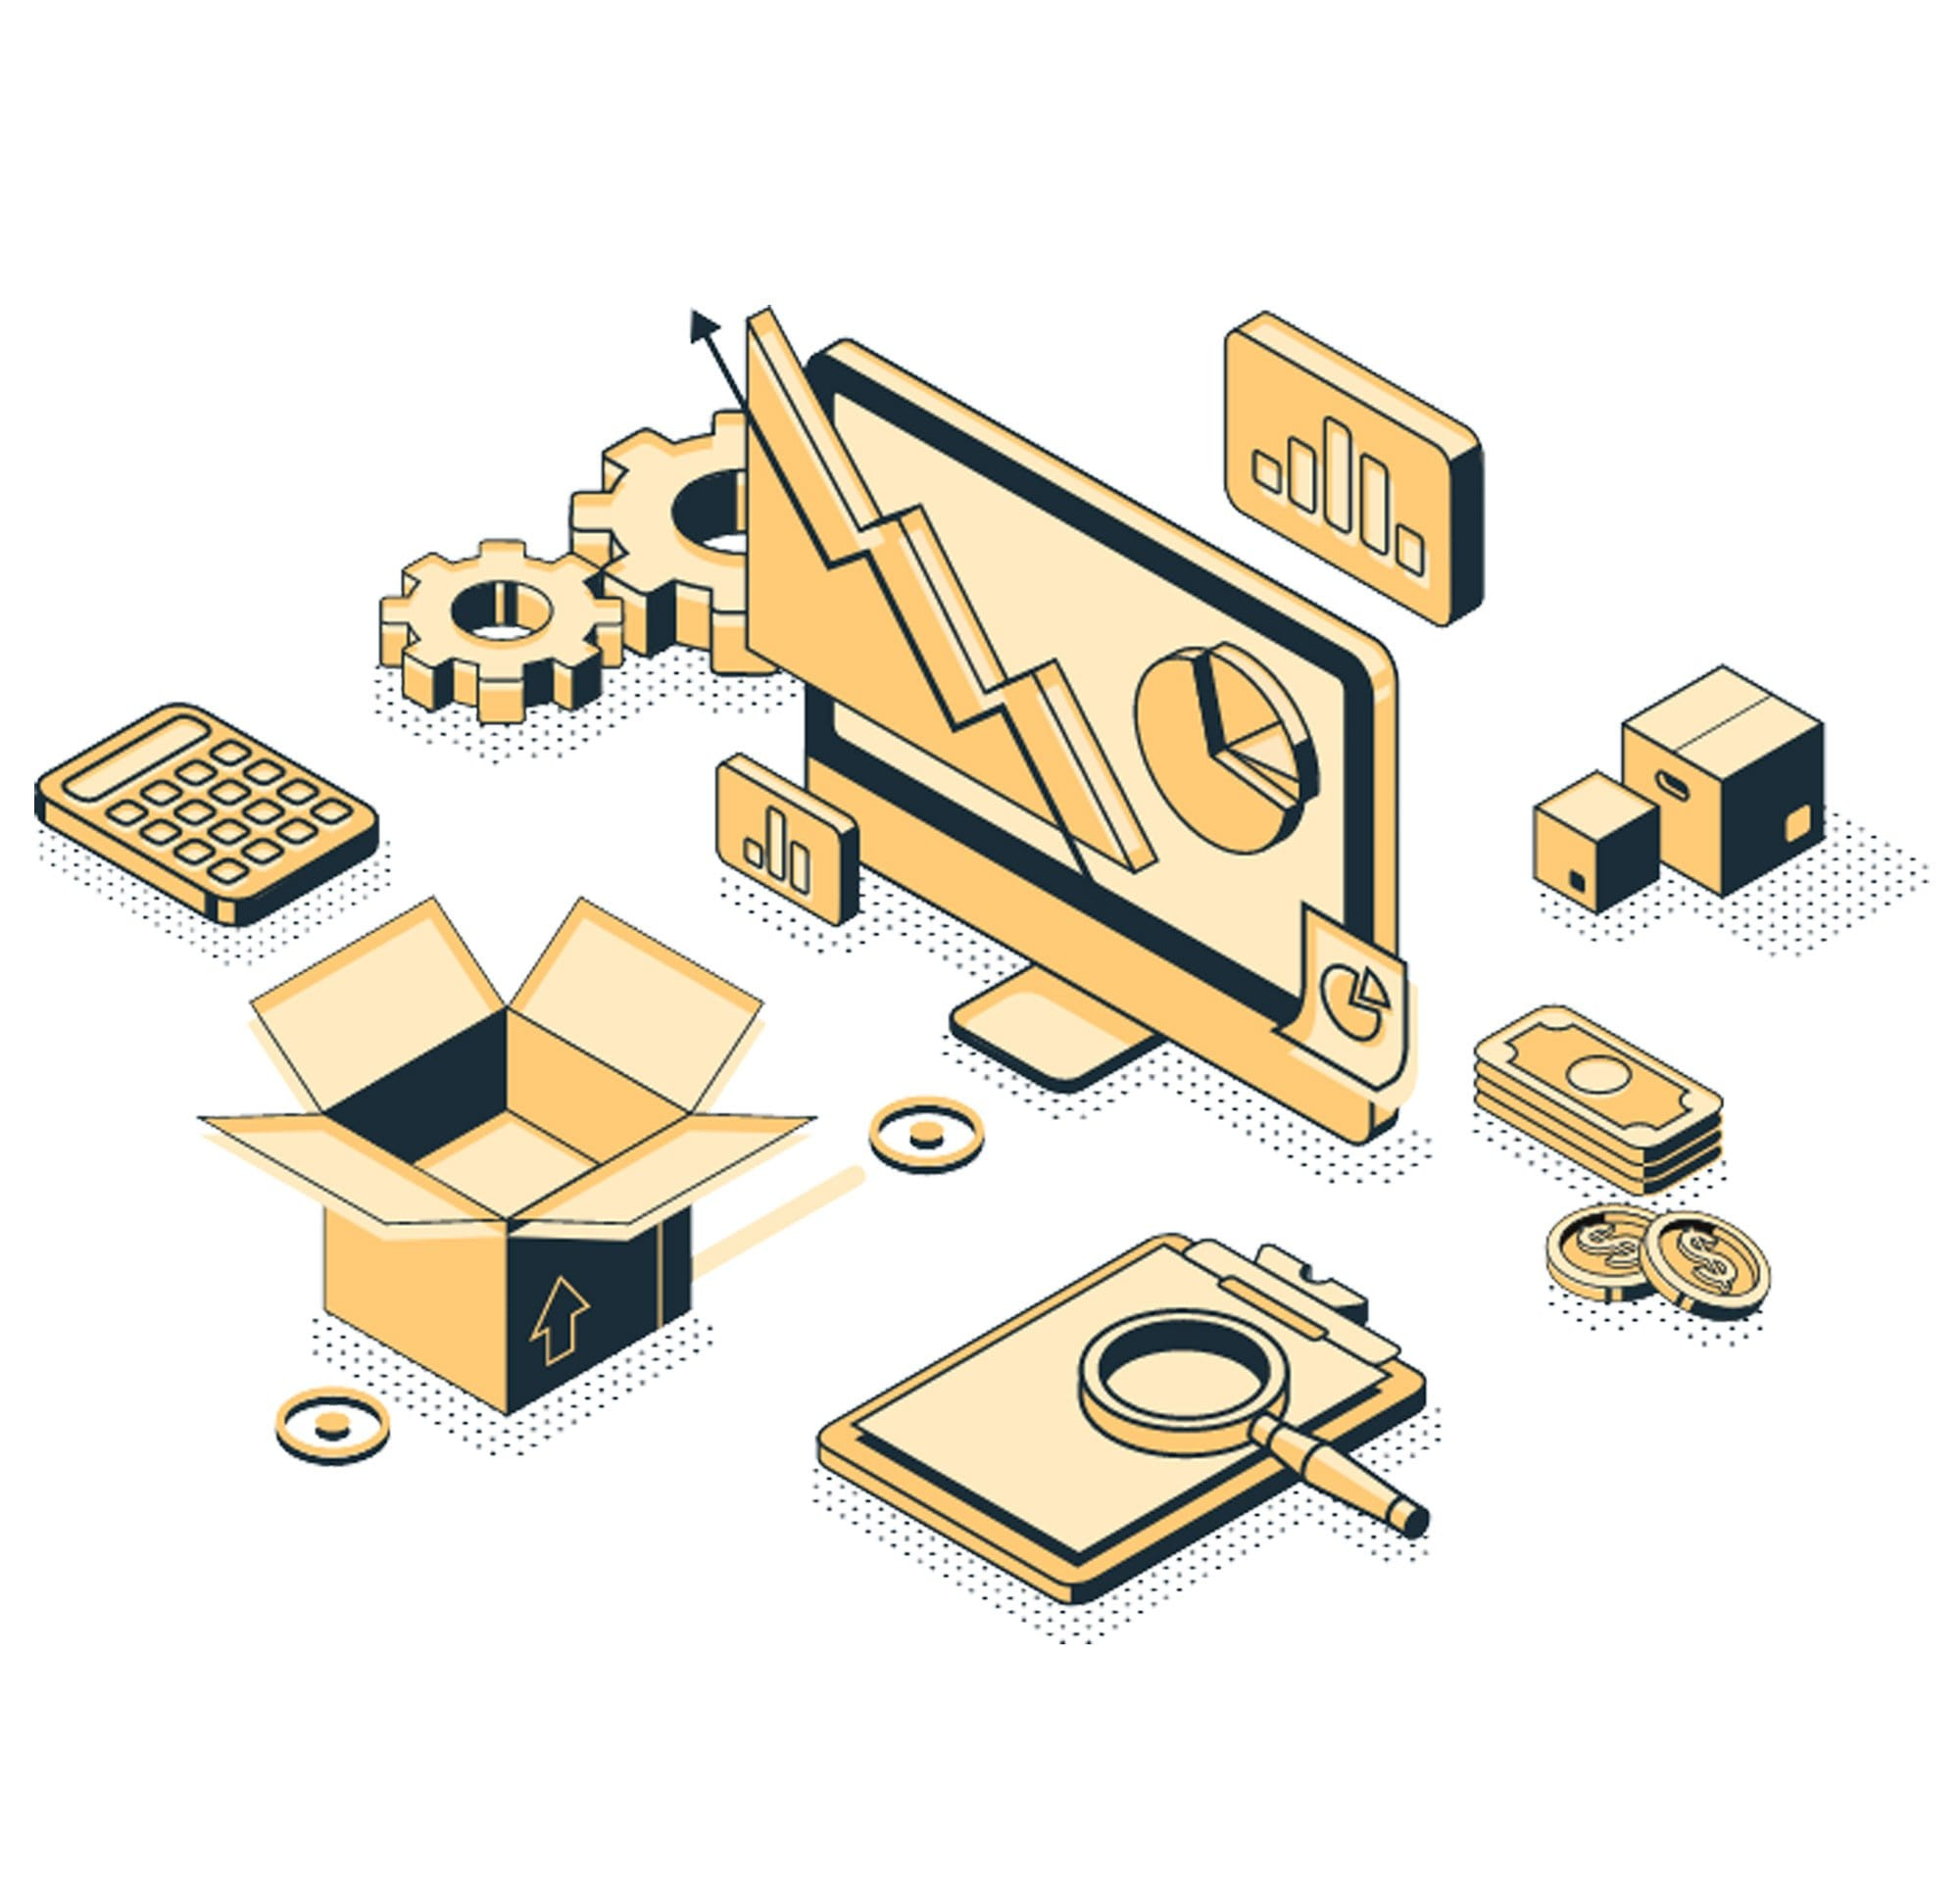 Isometric Vector Website Illustrations, Graphic Design